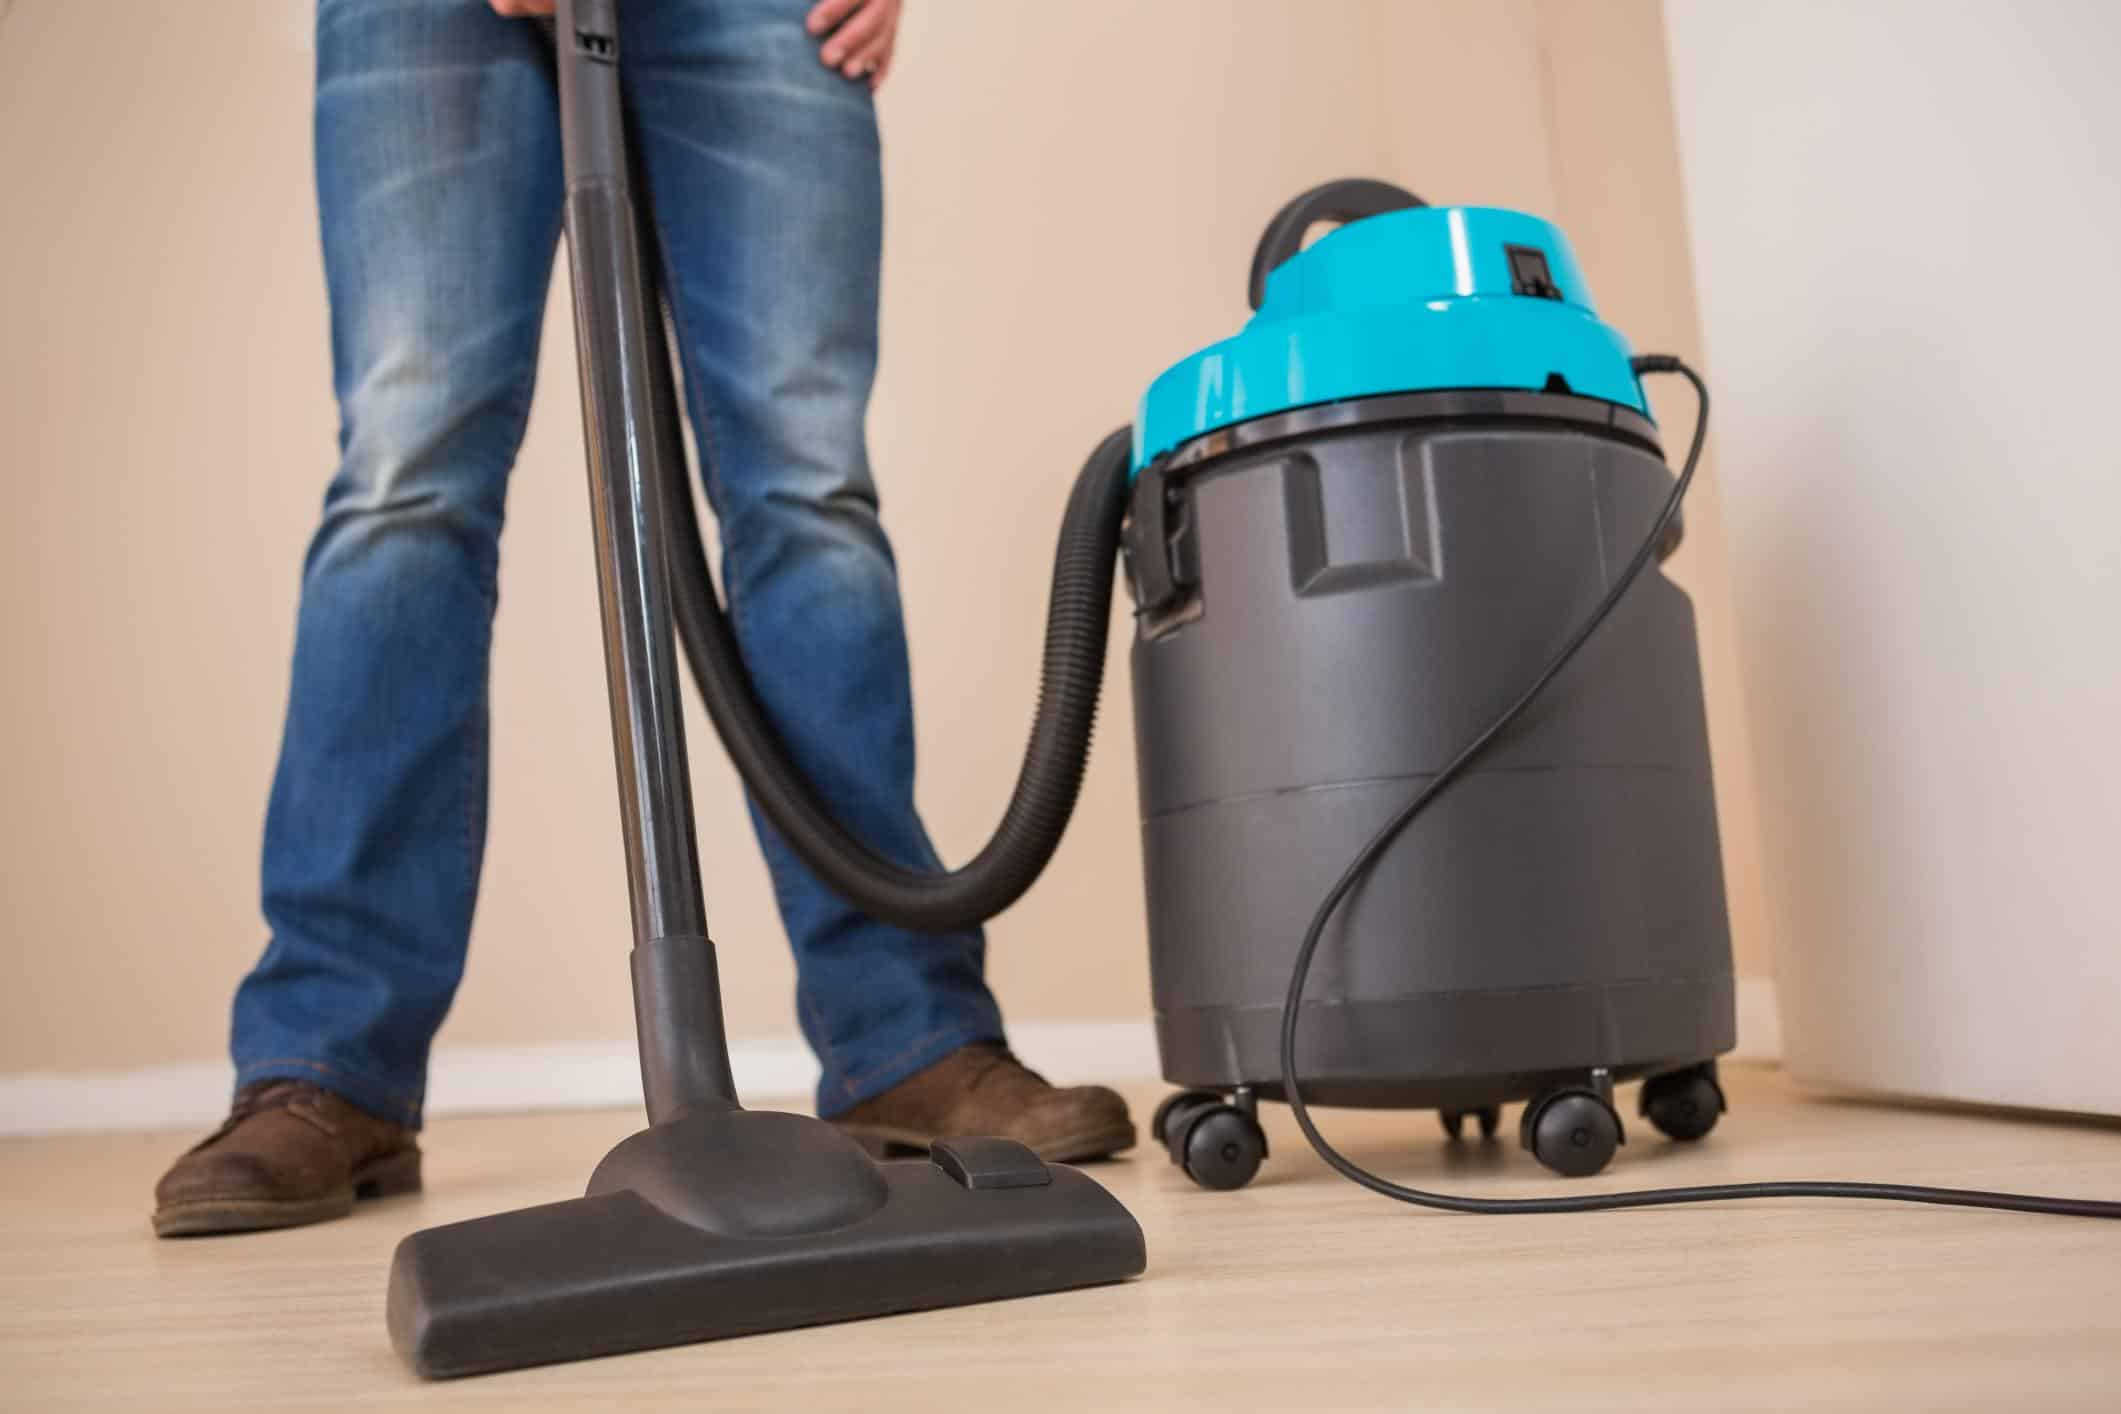 This is a picture of a carpet cleaner services.